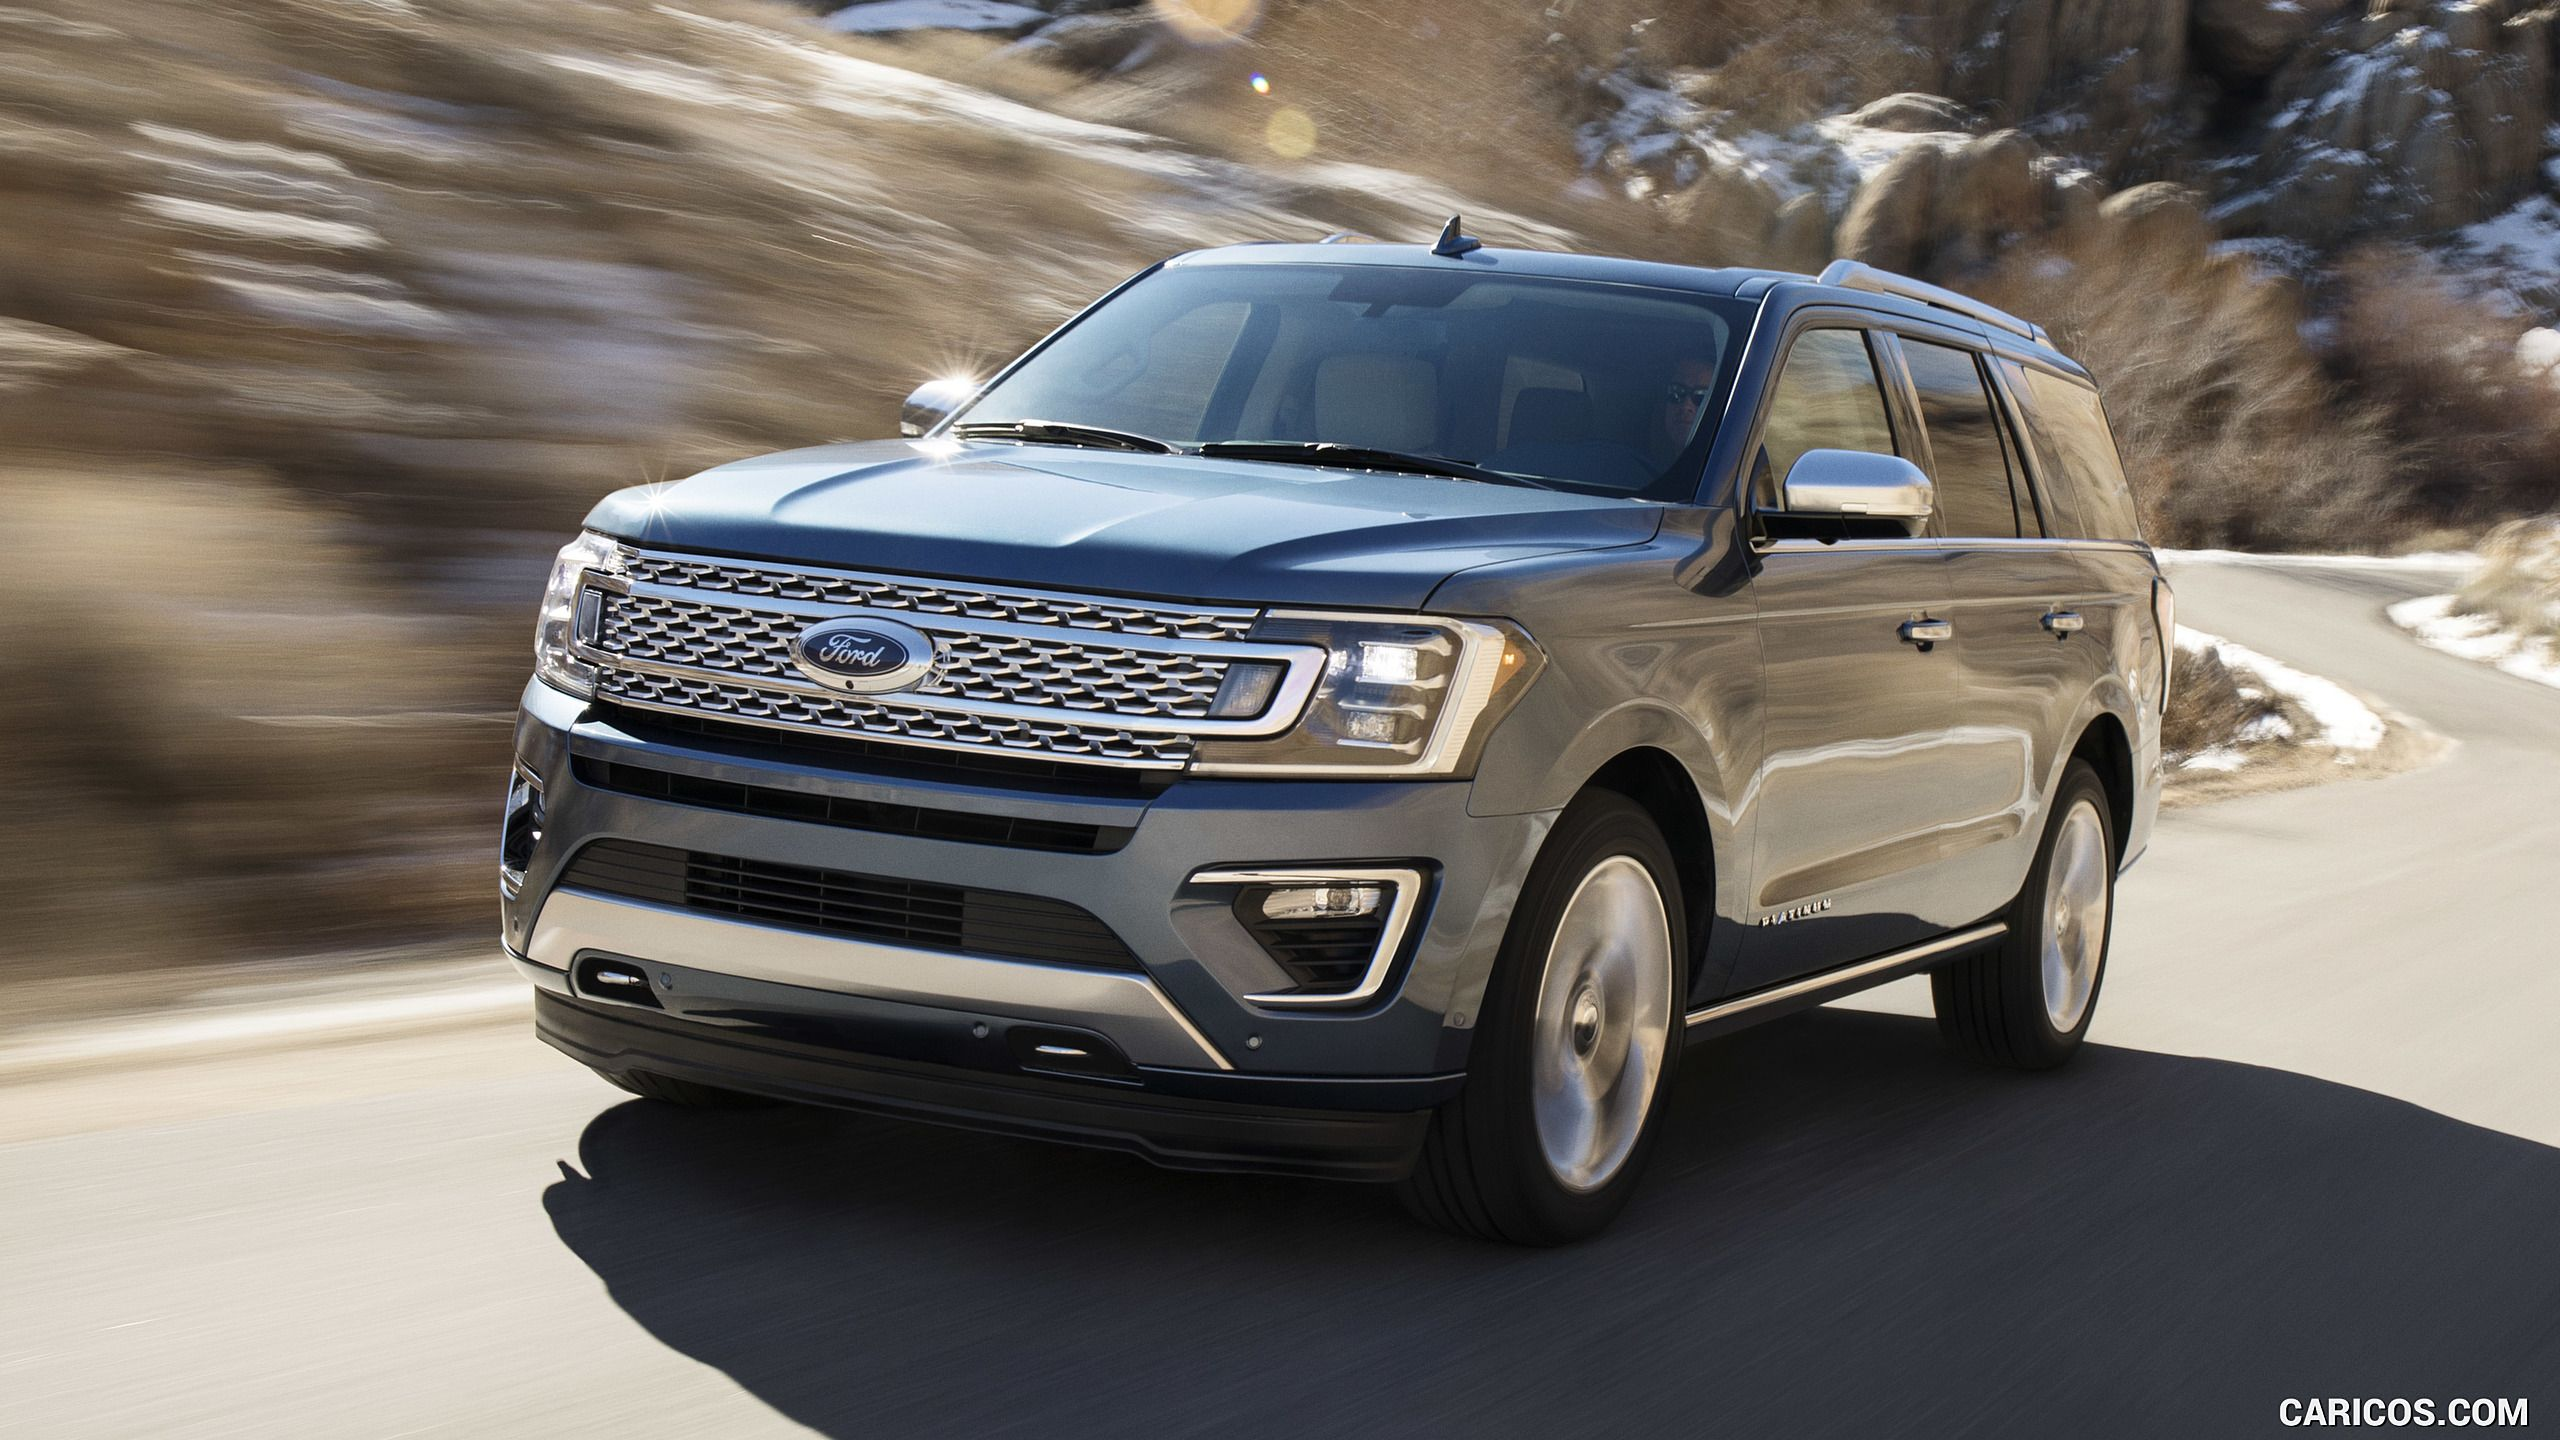 2018 Ford Expedition(画像あり)